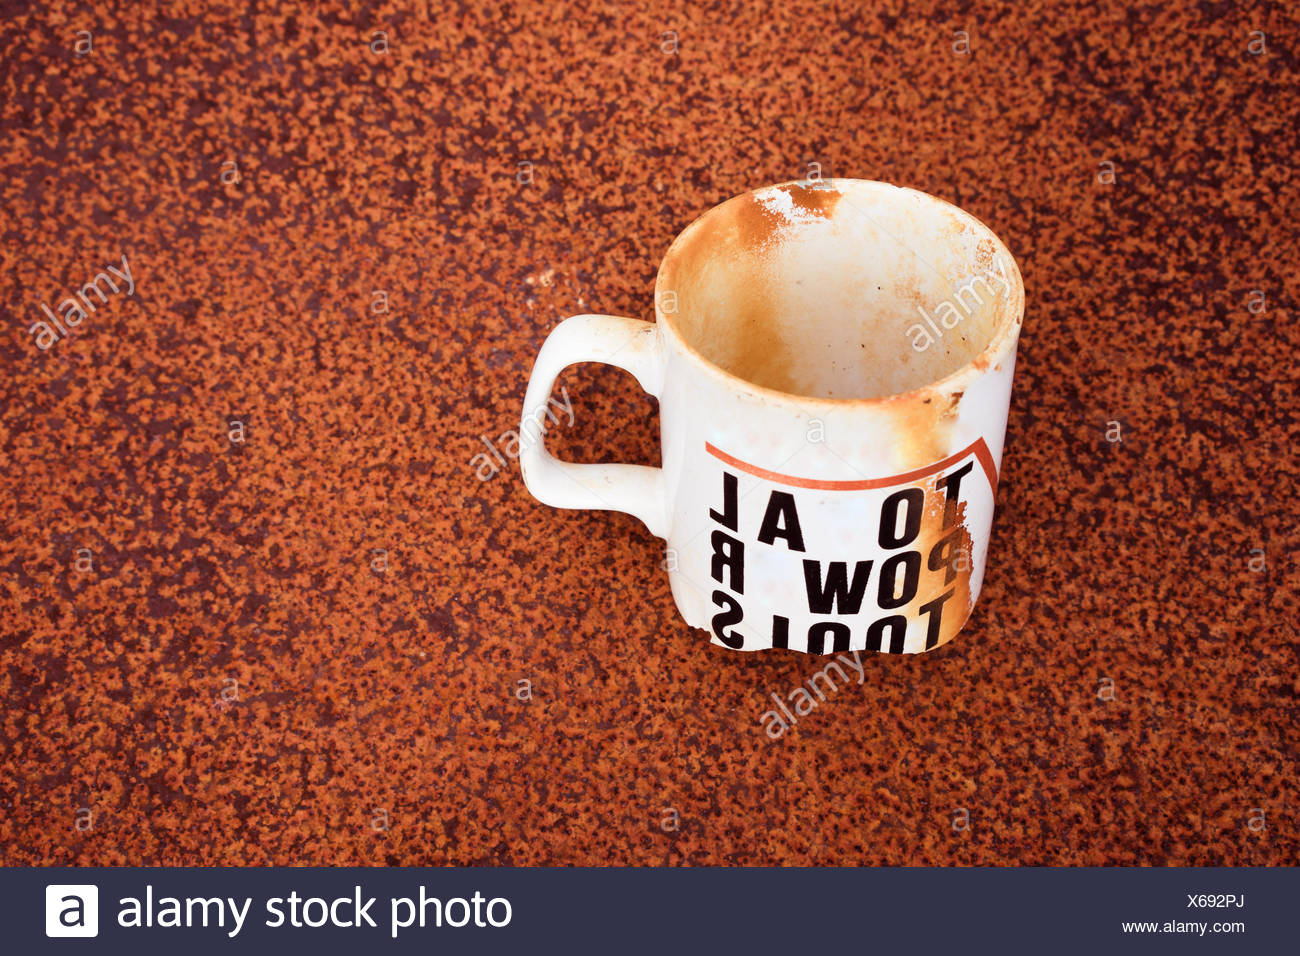 Stained Single White Cup Buried - Stock Image